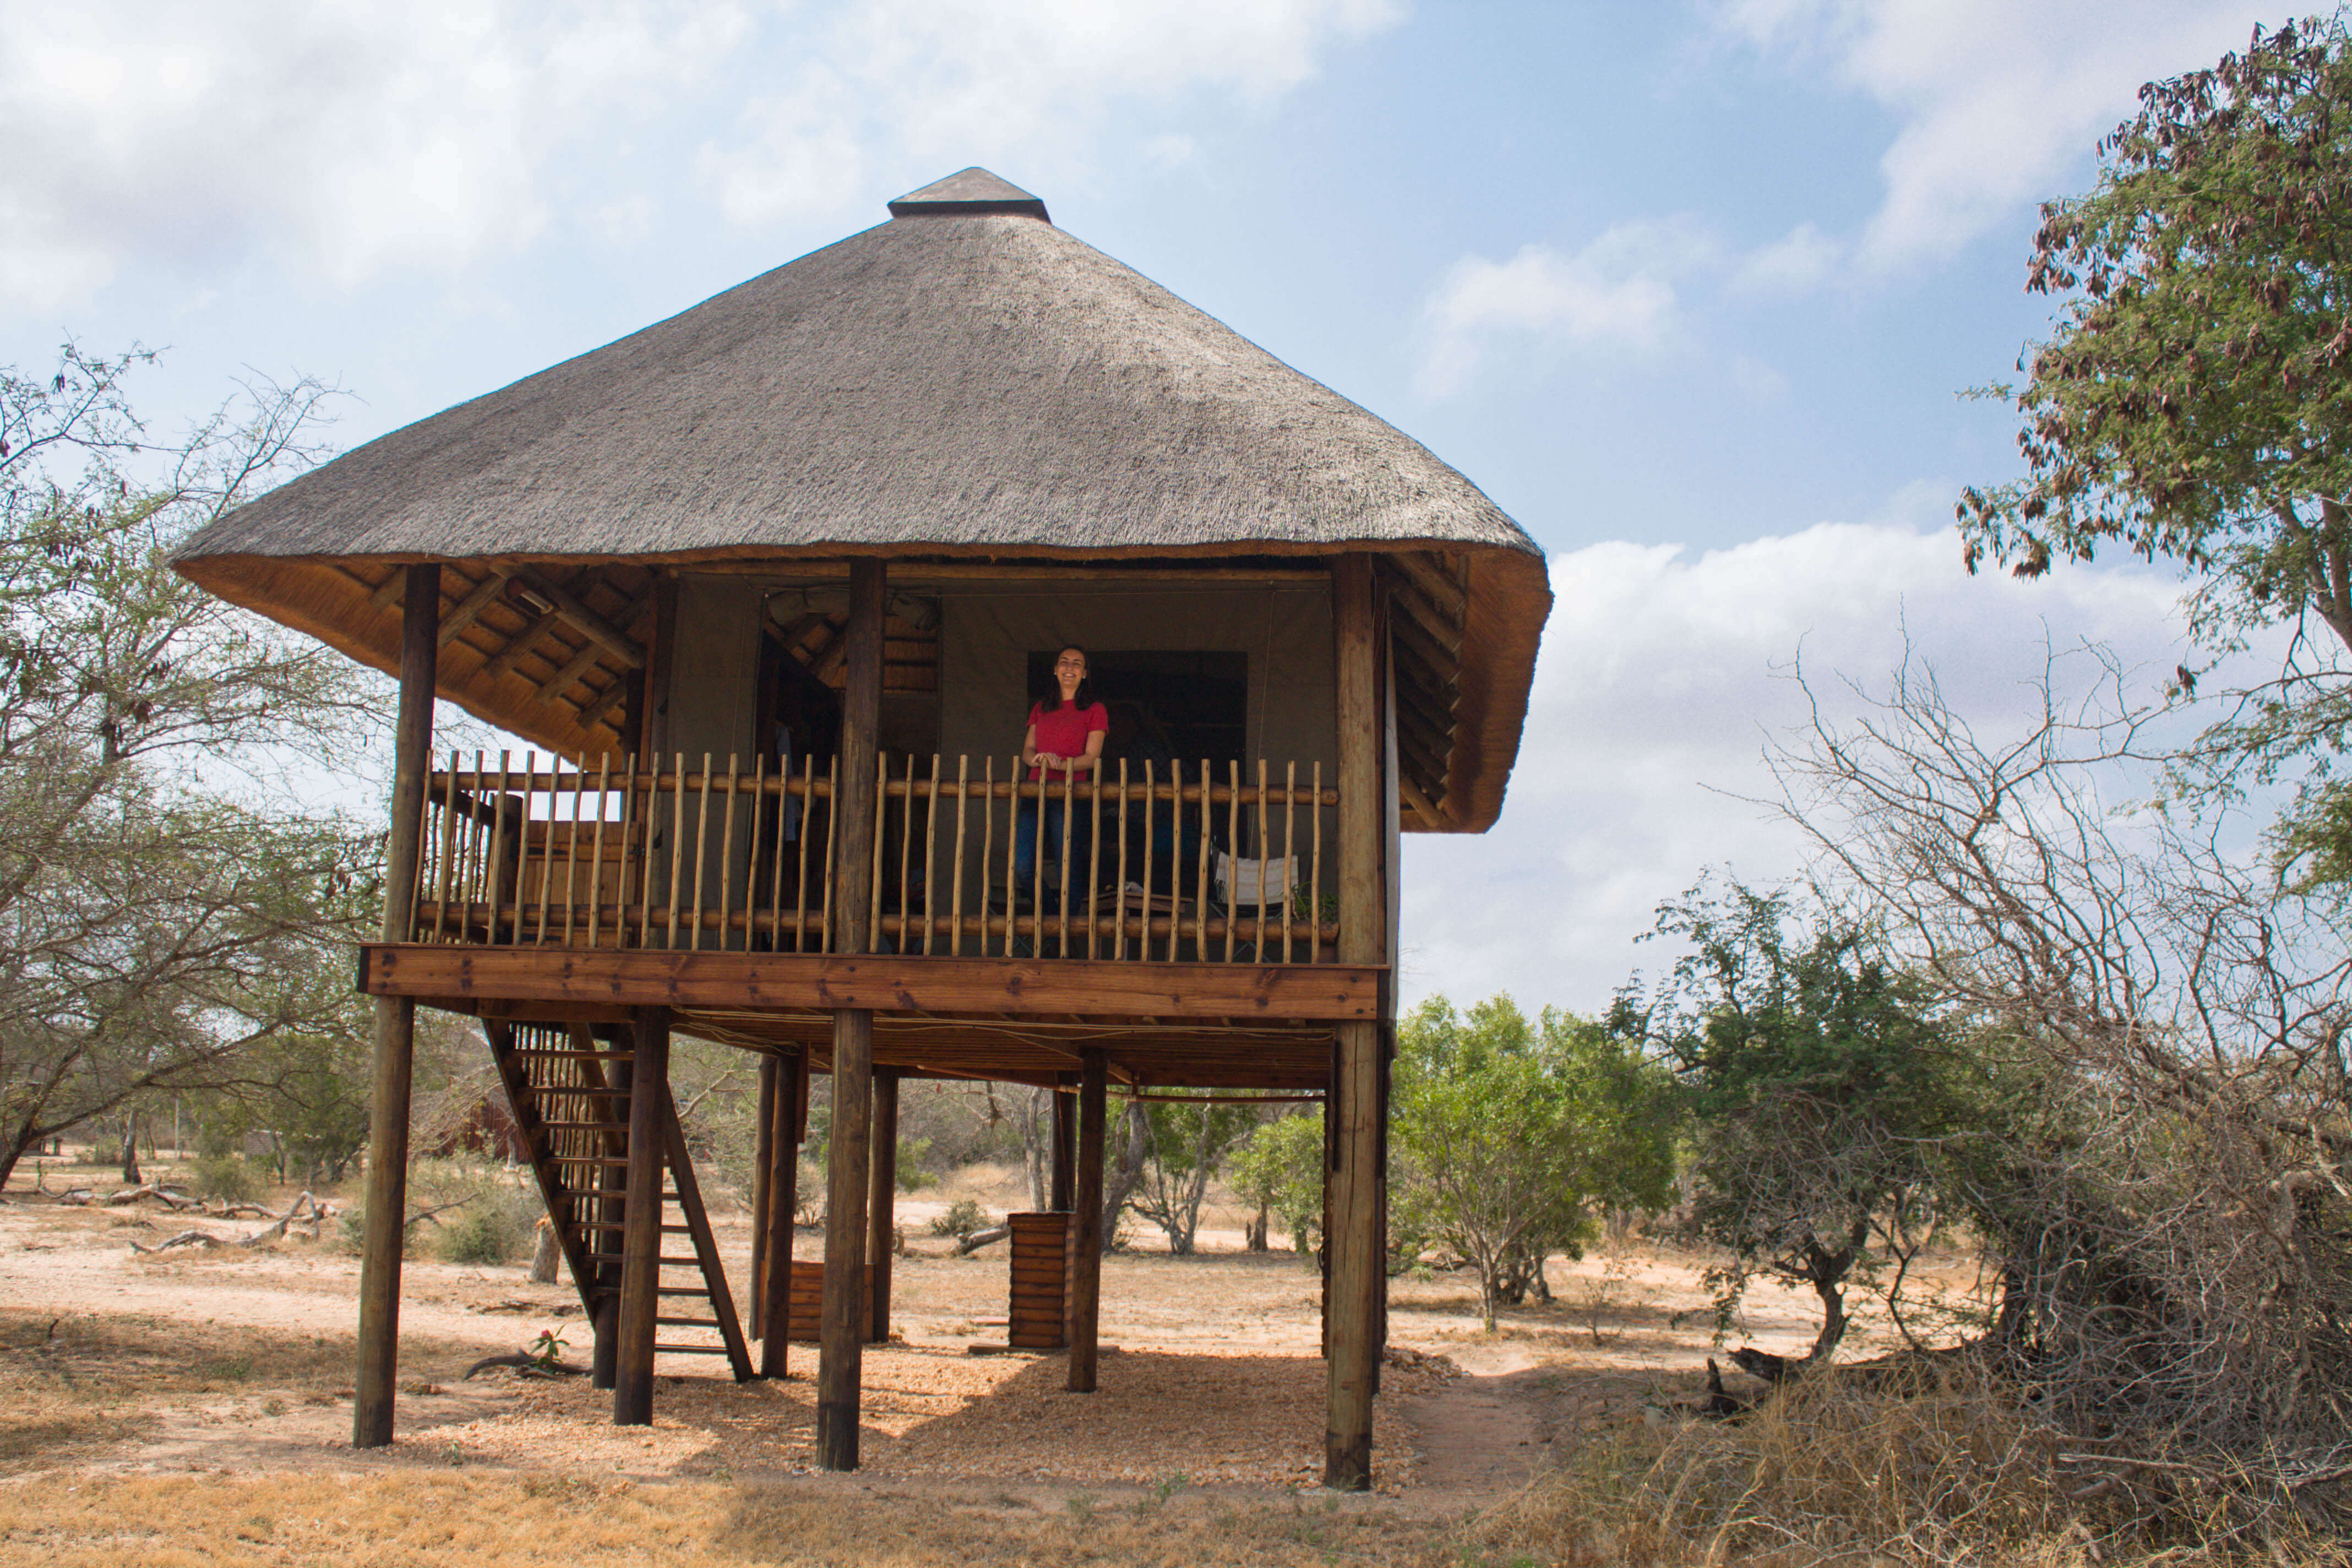 Sleeping in a treehouse in the Kruger NAtional Park, Souh Africa. Nthambo Tree Camp is located on the private concession of Klaserie